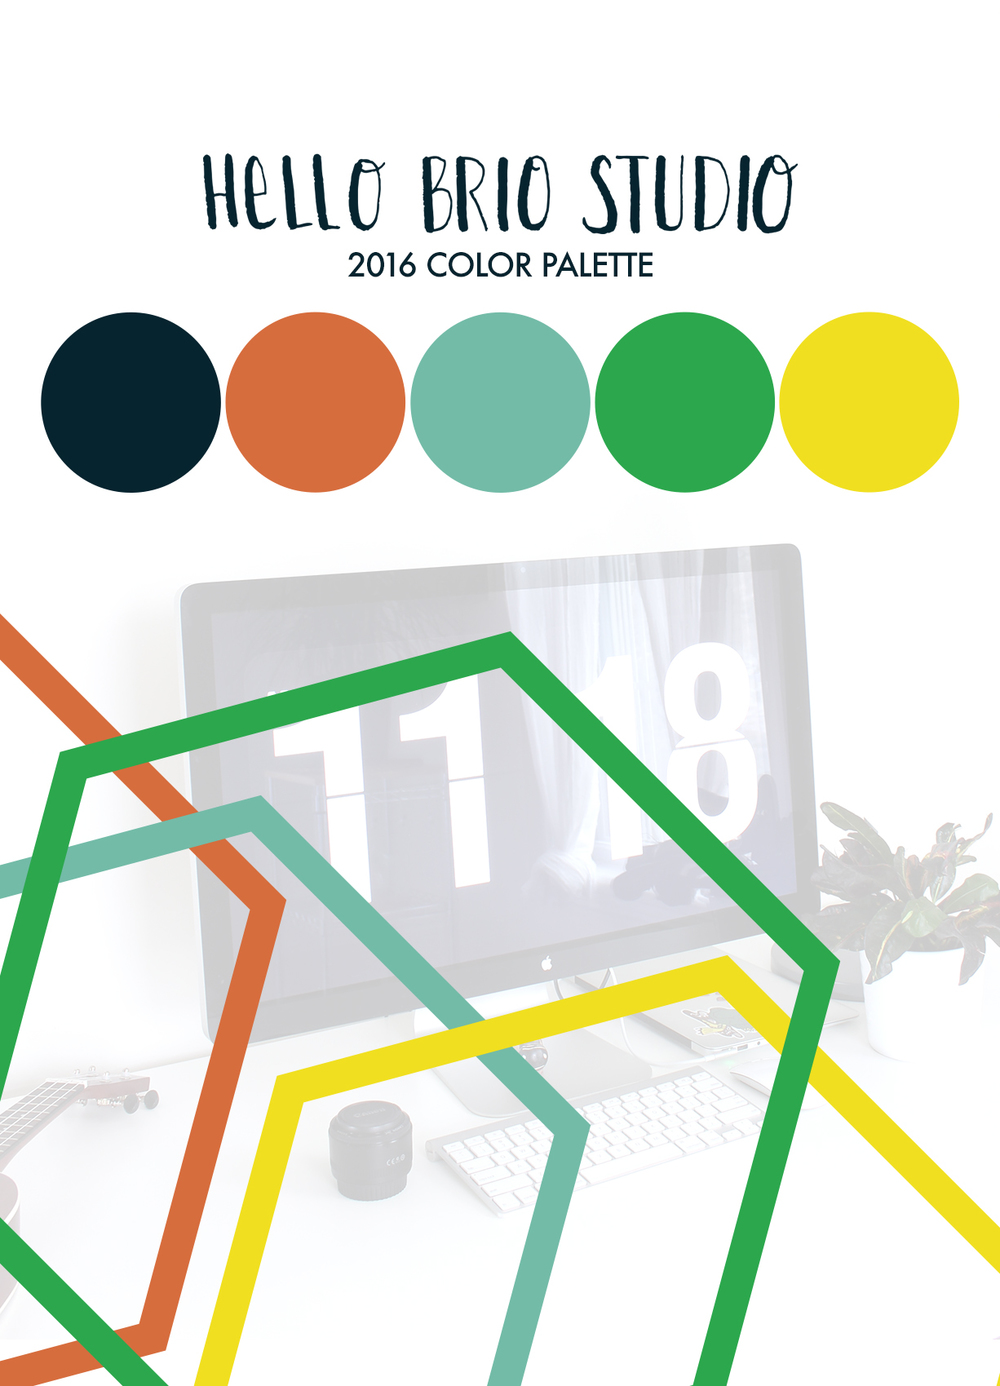 Click through to find out the story behind the new Hello Brio Studio 2016 Color Palette!